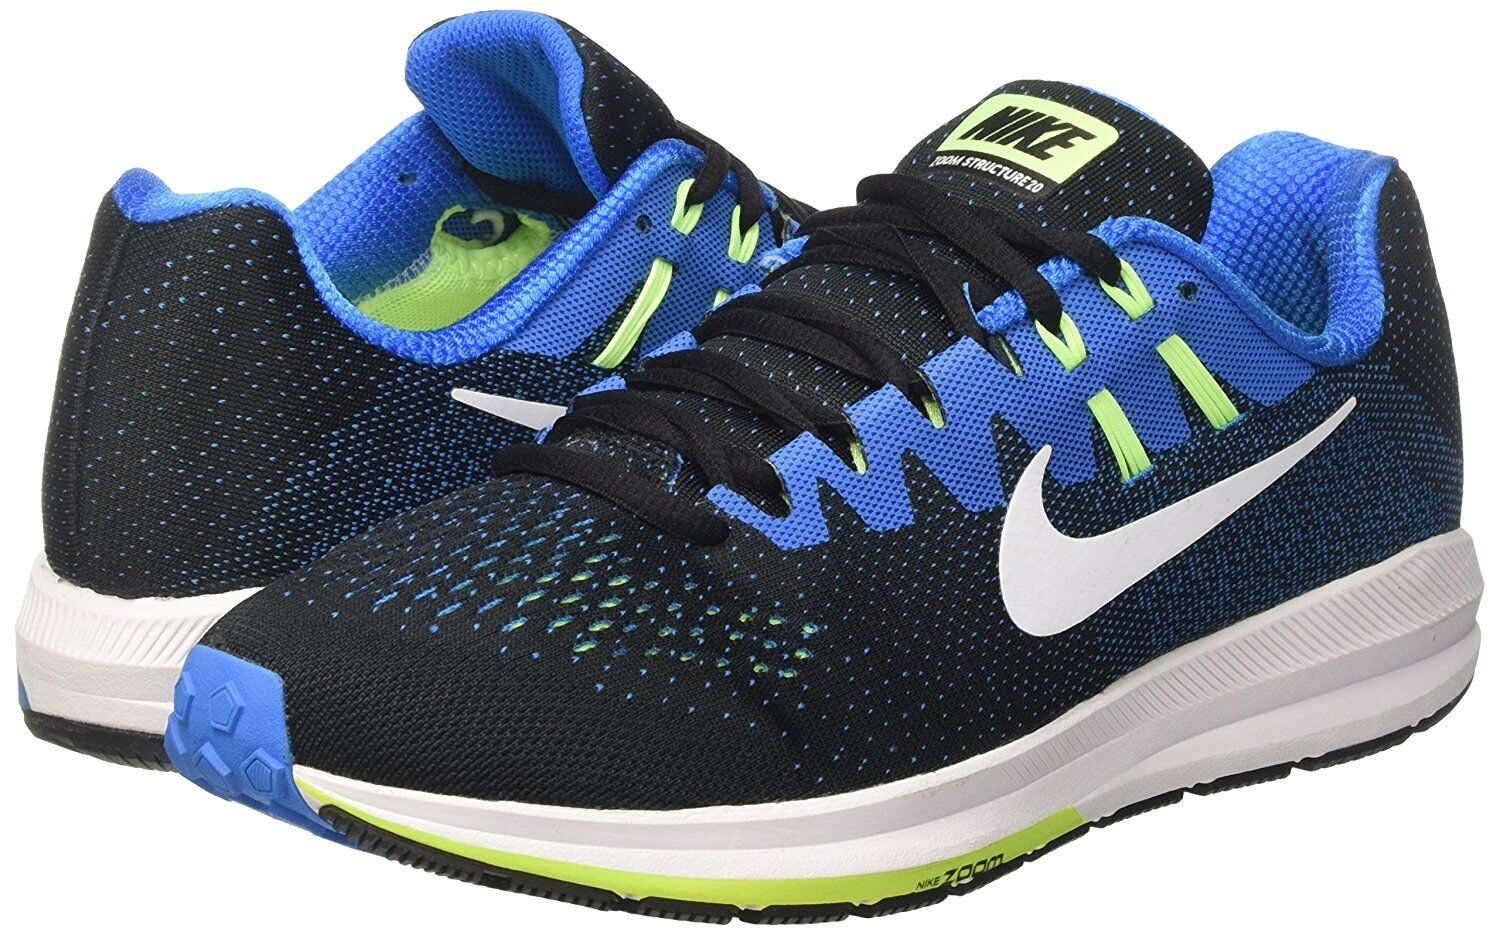 Men's Nike Air Zoom Structure 20 Running shoes, 849576 004 Multip Sizes Black Wh